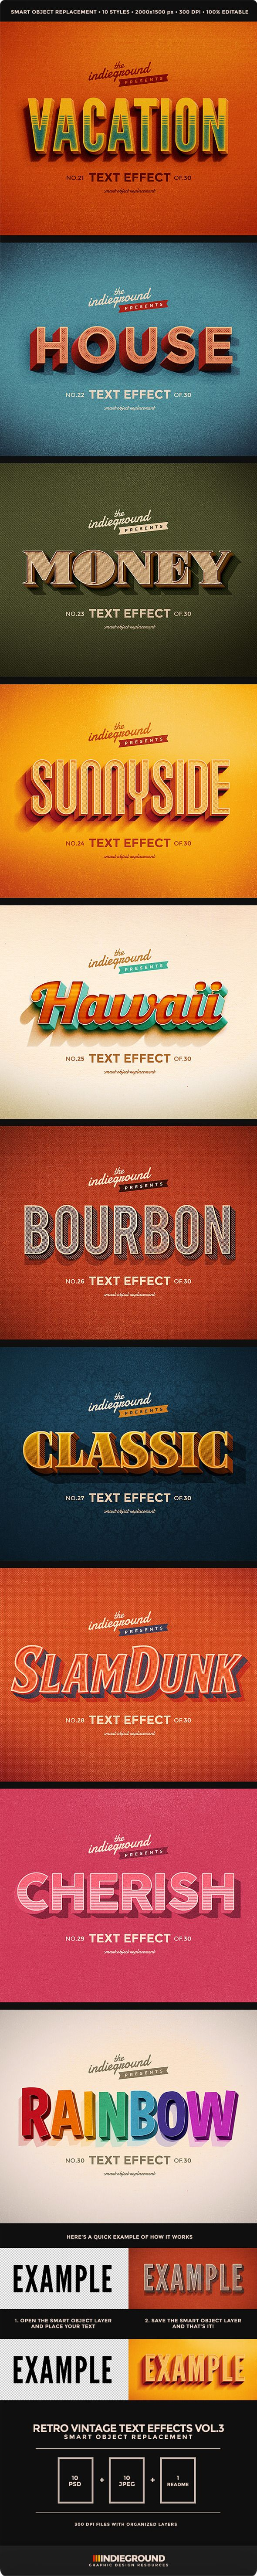 Retro Vintage Text Effects Vol. 3 - Text Effects Actions